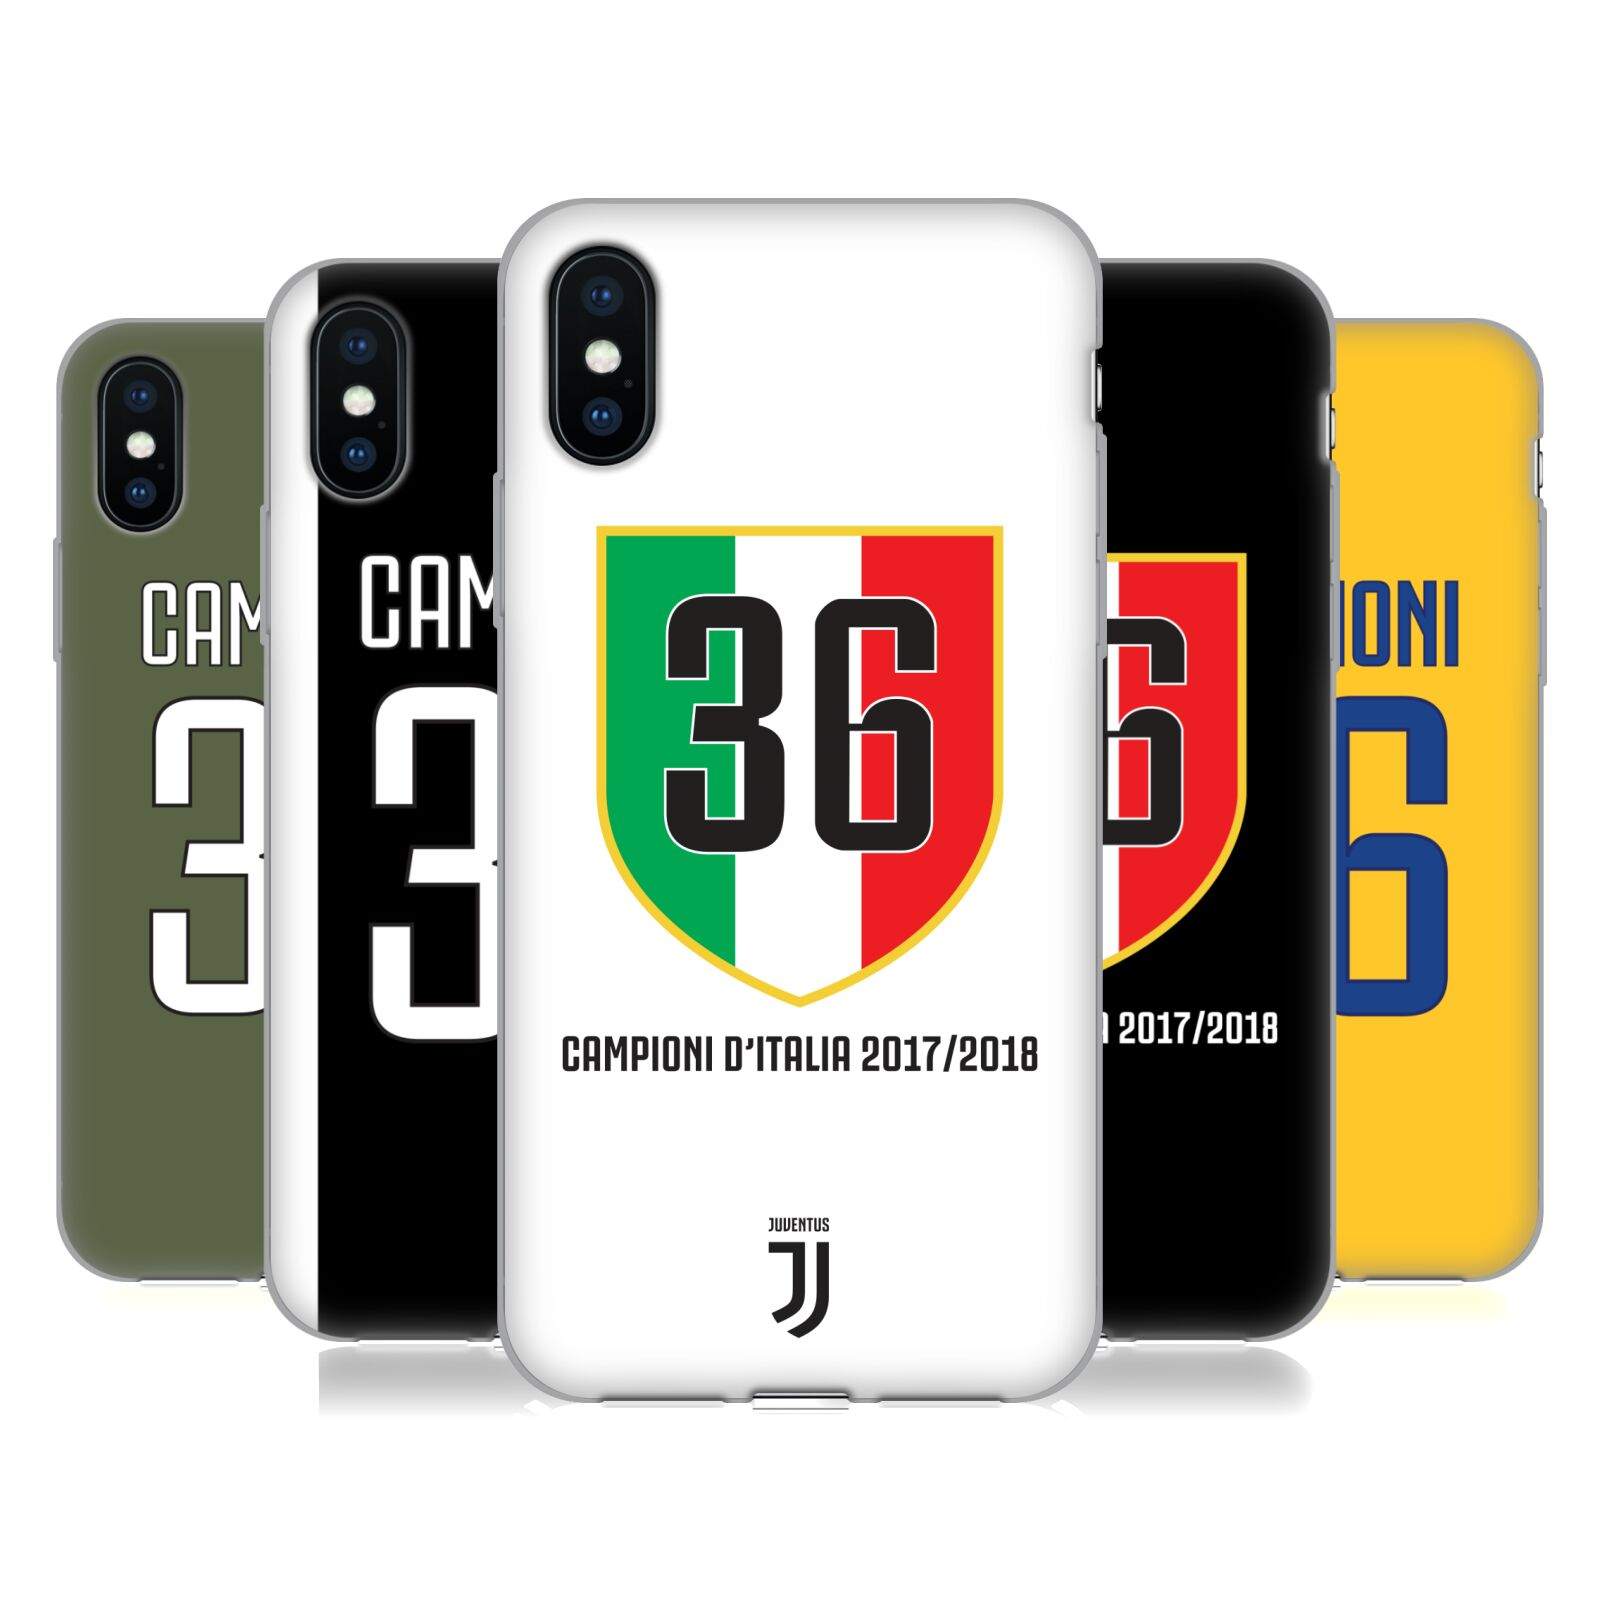 Juventus Football Club <!--translate-lineup-->2018 Campioni D'Italia<!--translate-lineup-->